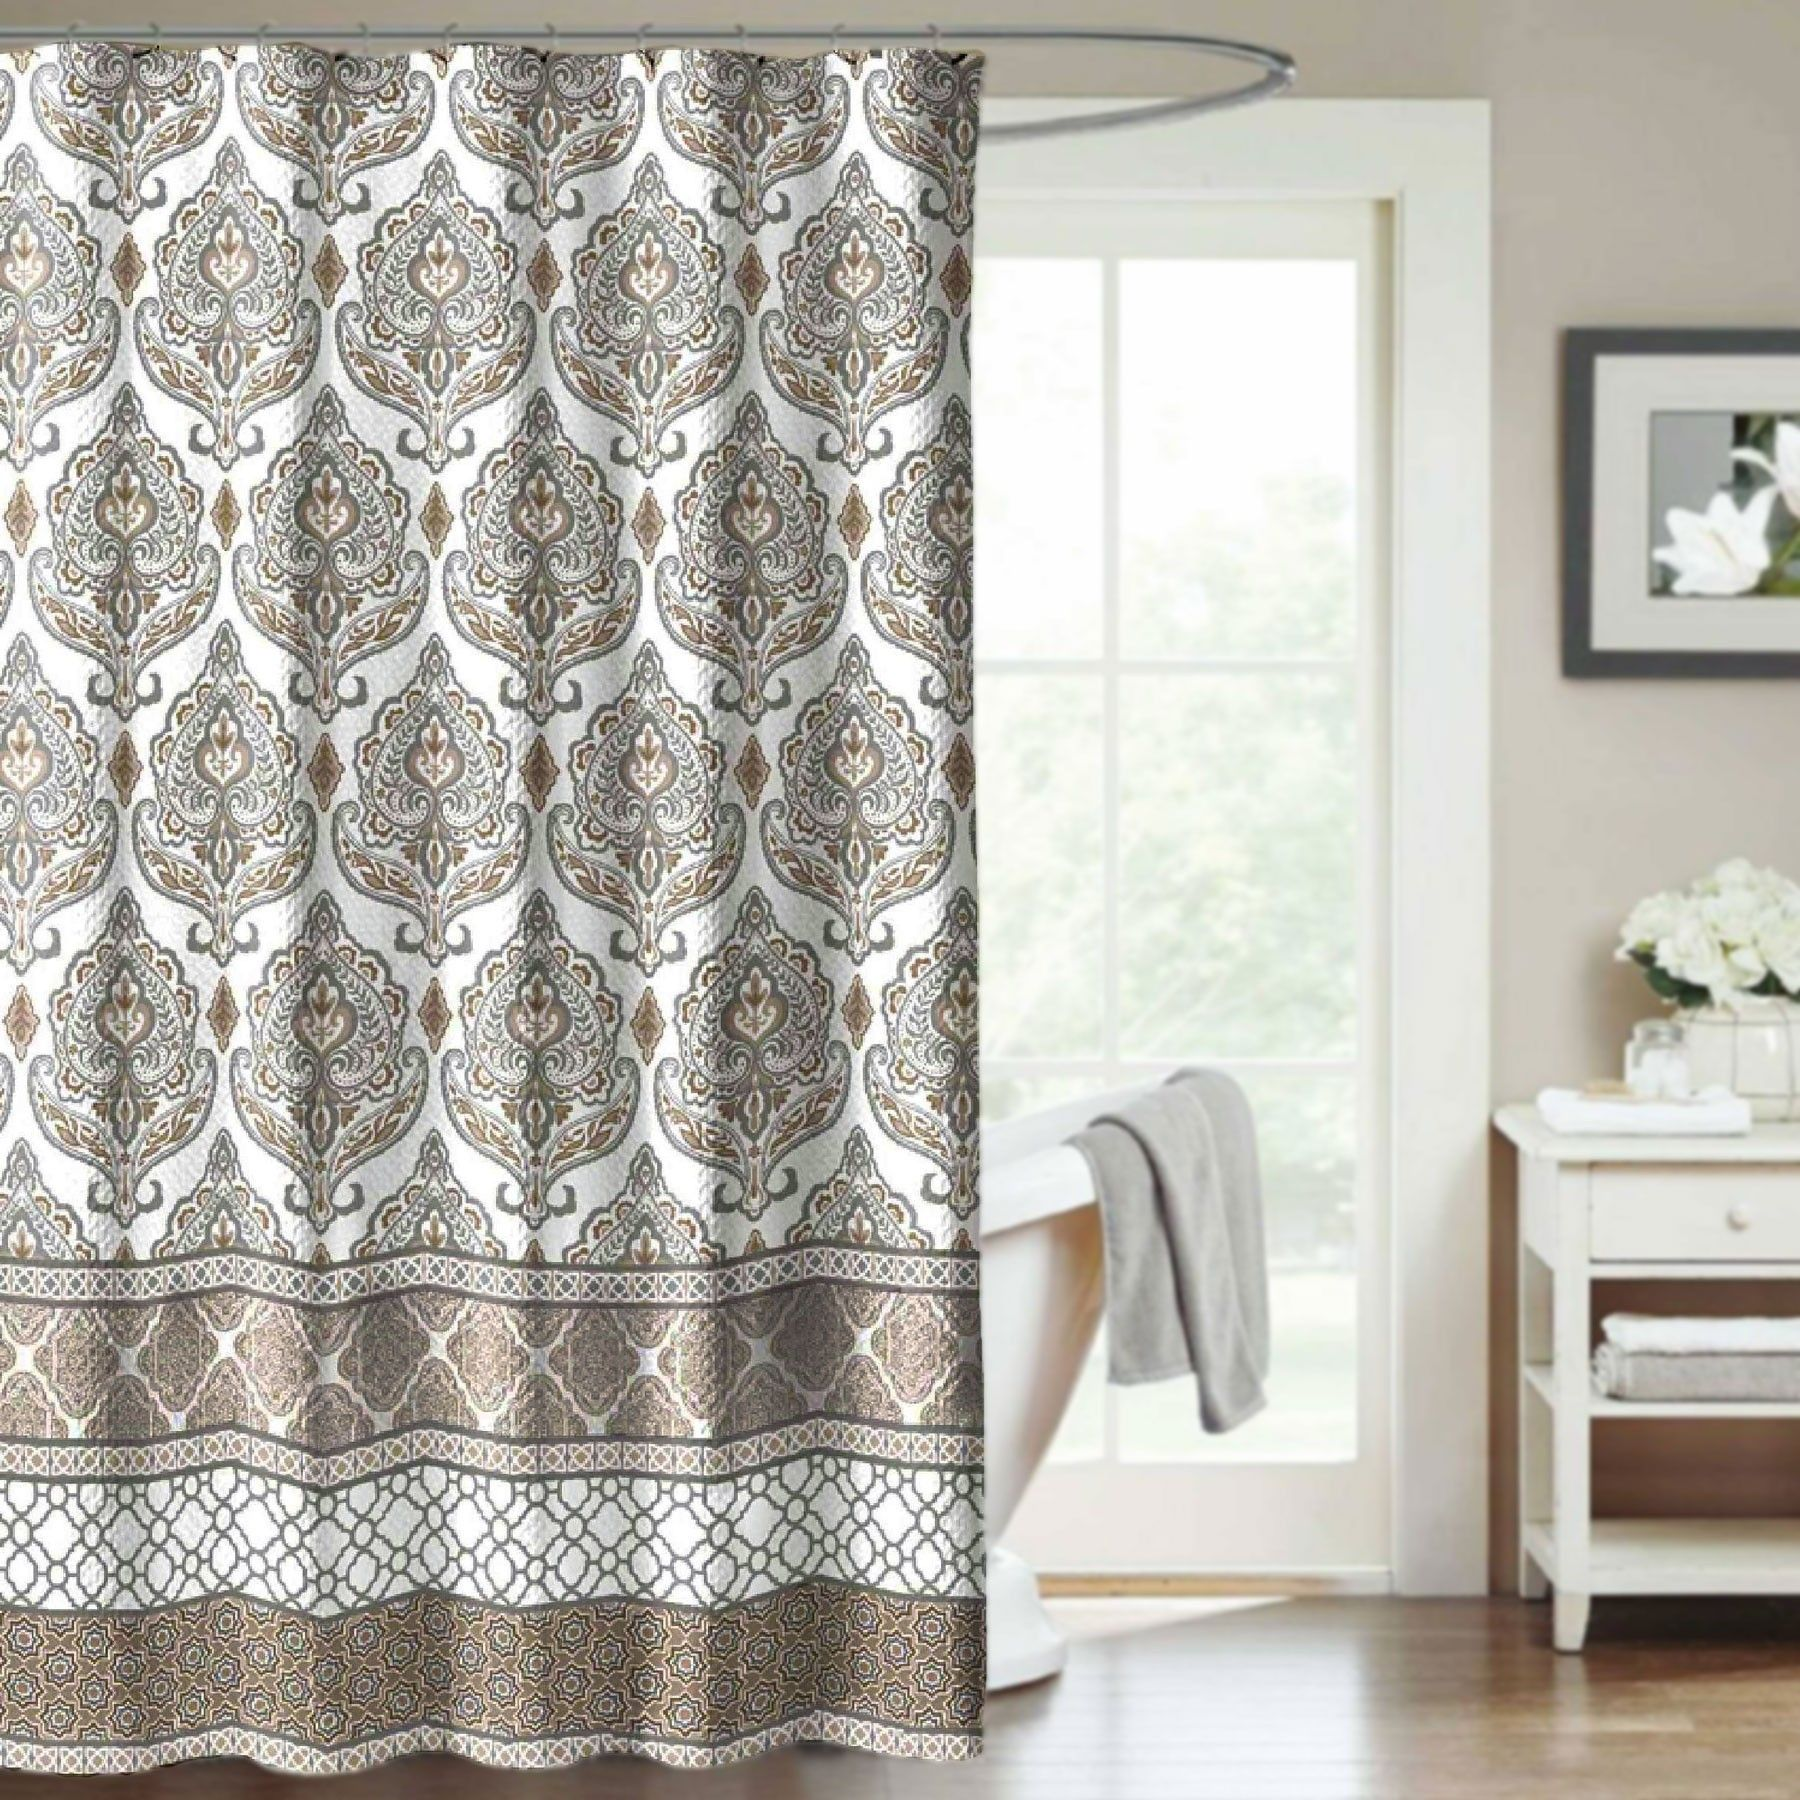 Crest Home Darien Natural Fabric Shower Curtain Damask Medallion Tan And  Gray